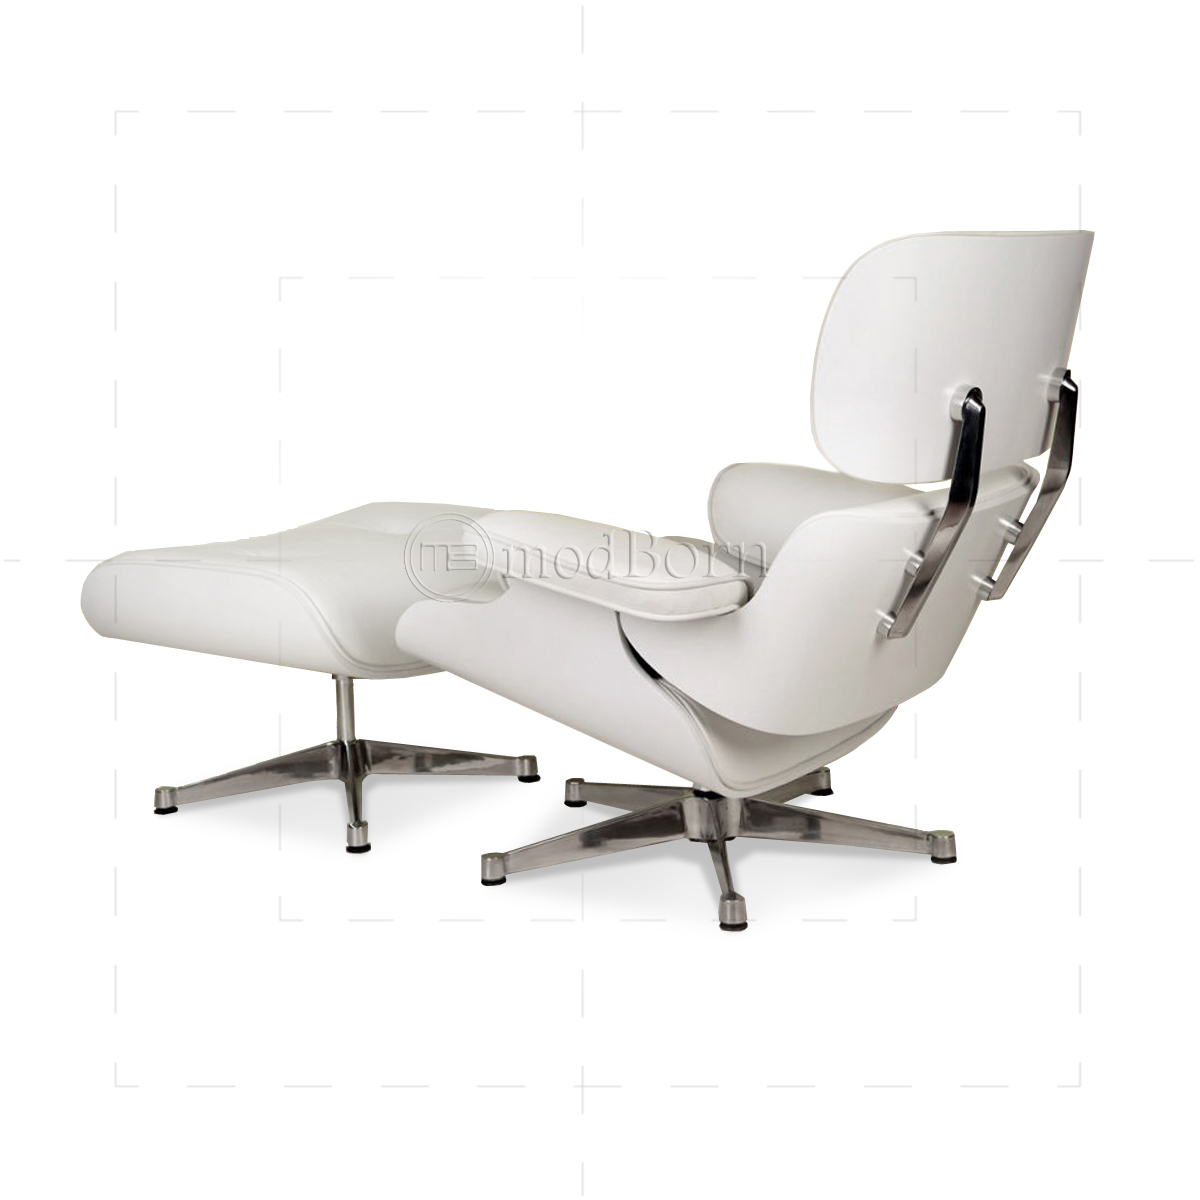 Eames style lounge chair and ottoman white leather white for Eames replica